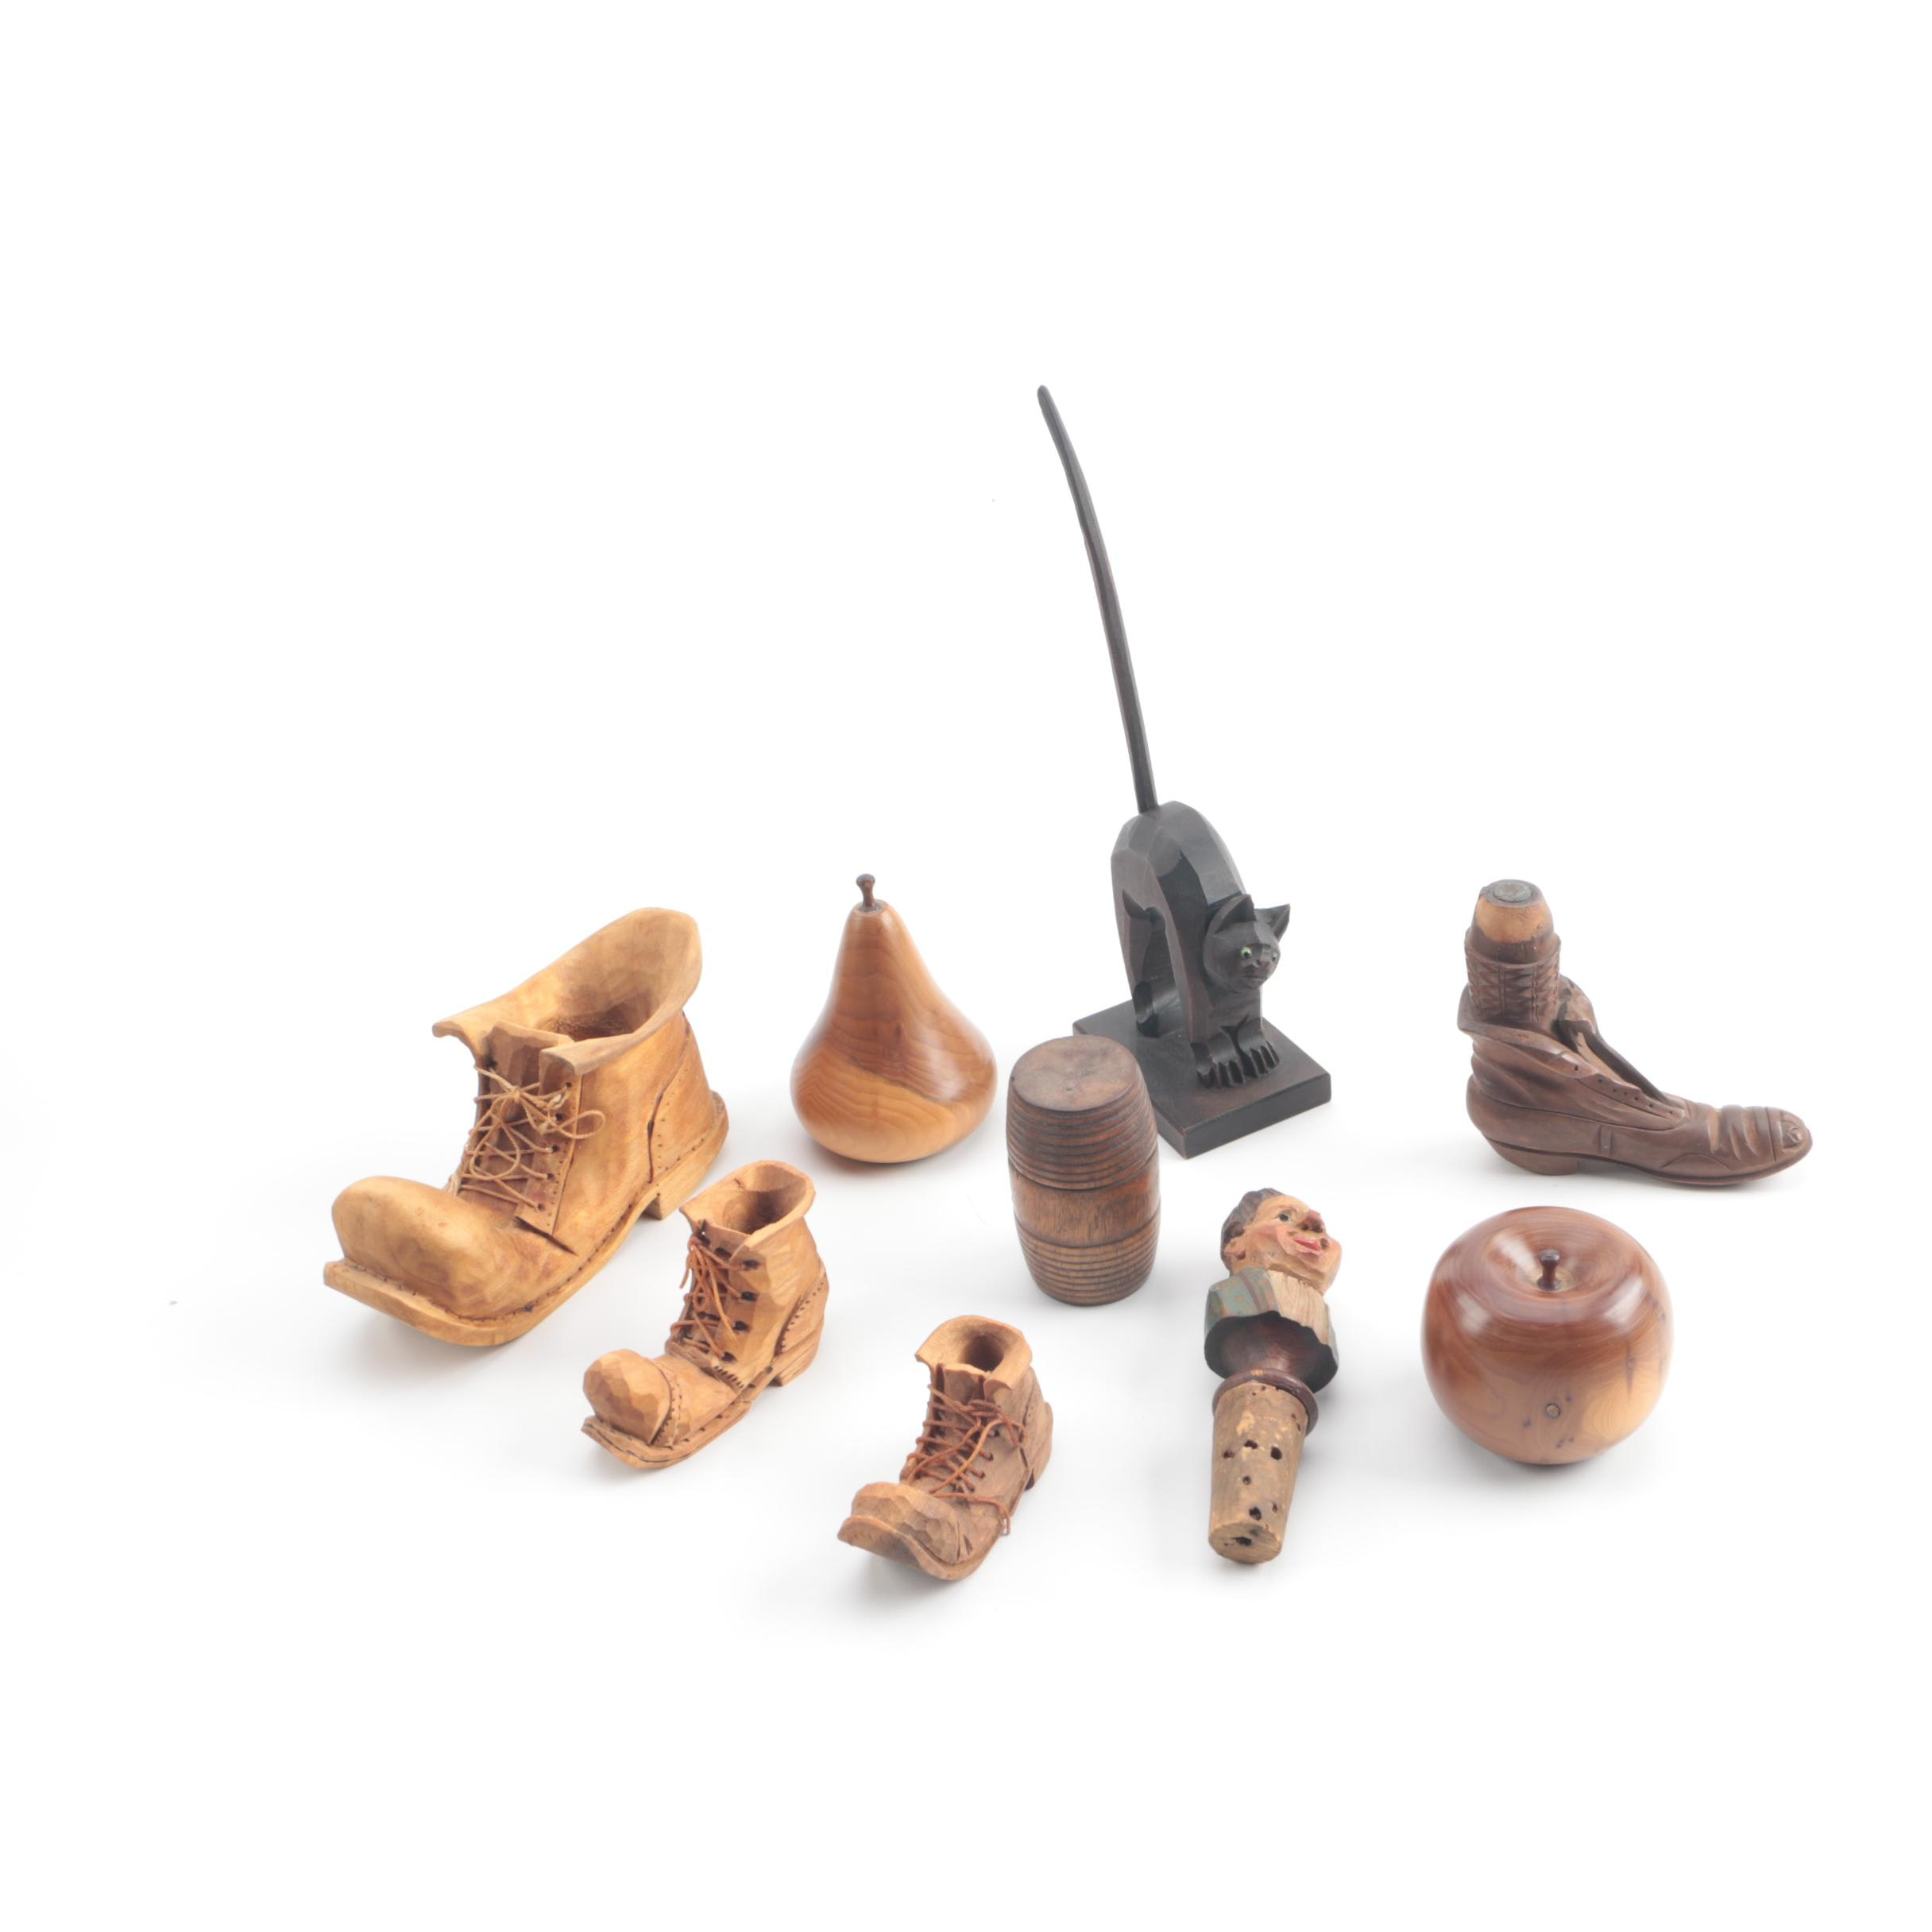 Carved Wood Figurines and Cork Stoppers